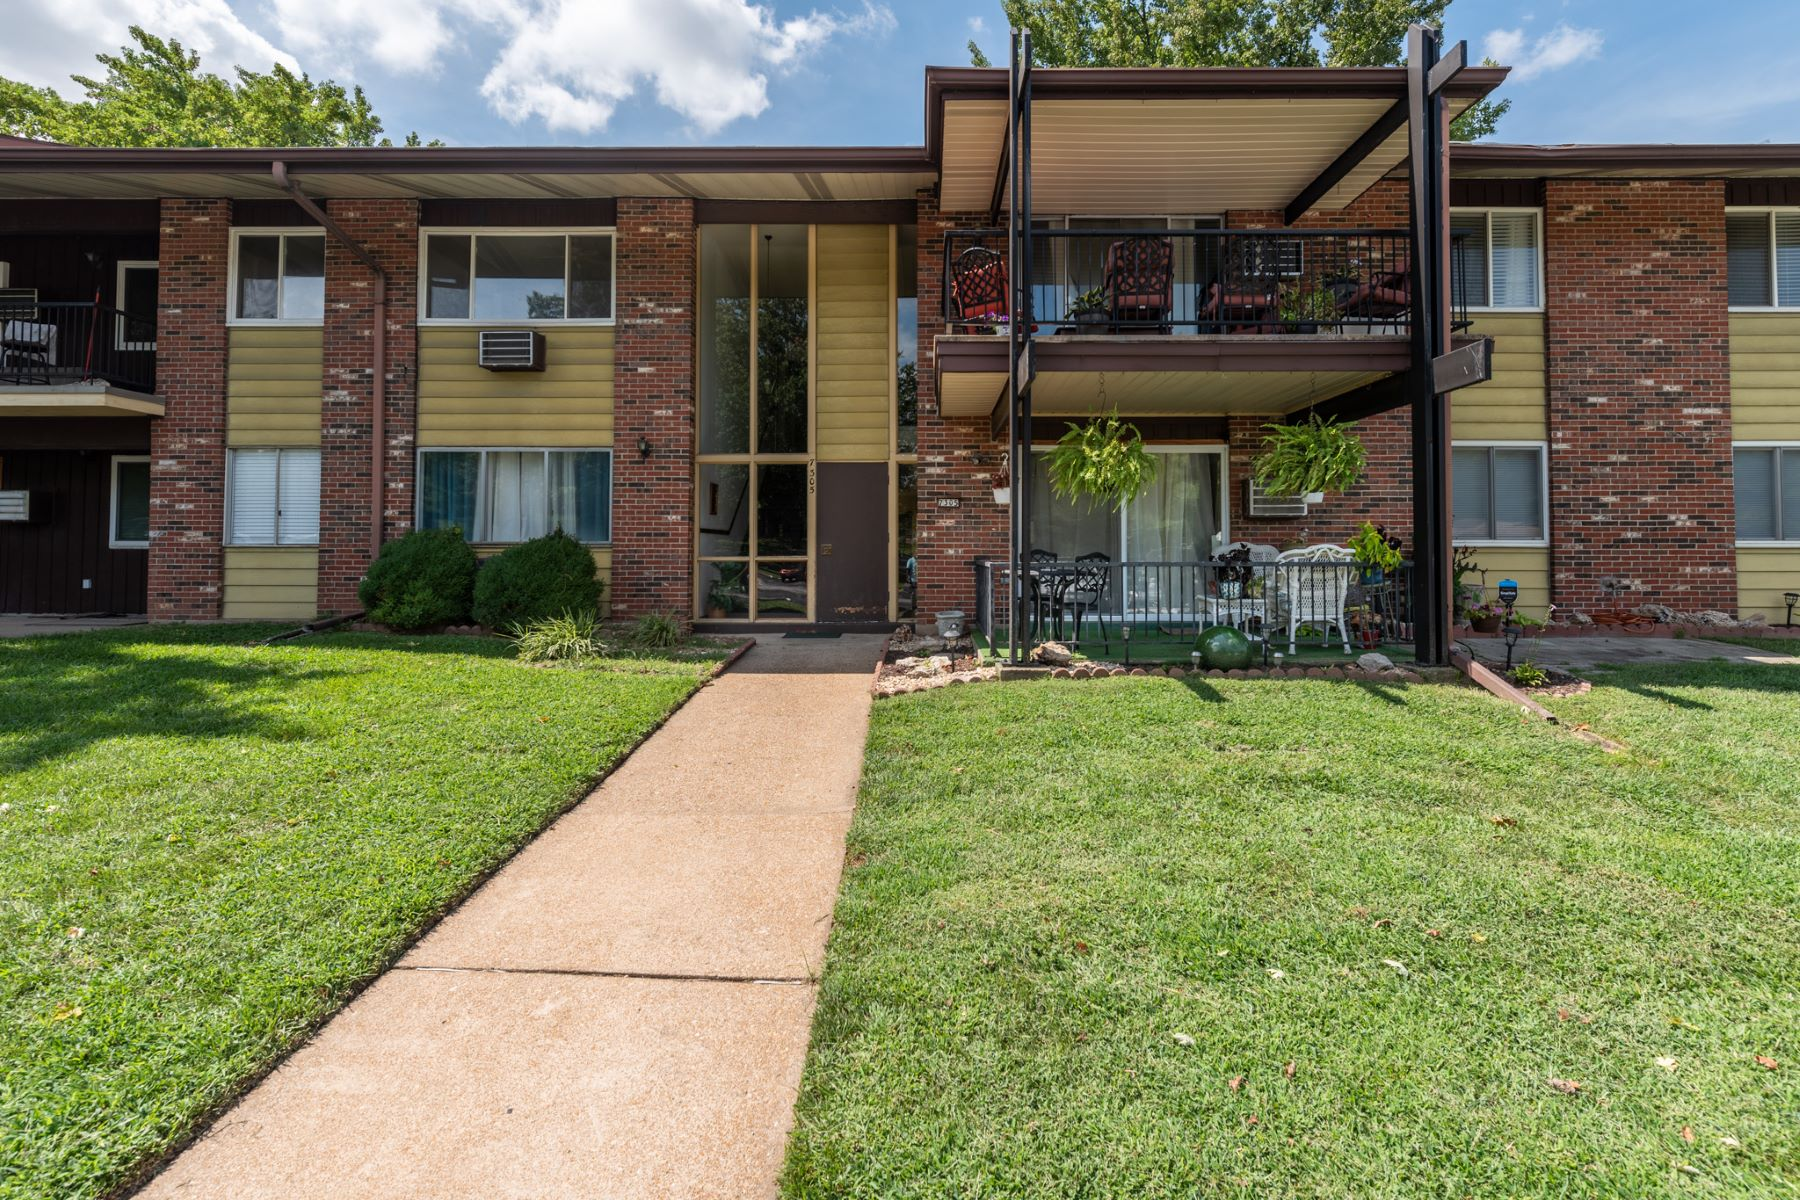 Condominiums للـ Sale في Lovely first-floor condo with walk-out patio in beautiful Hazelcrest 7305 Sieloff Drive D, Hazelwood, Missouri 63042 United States